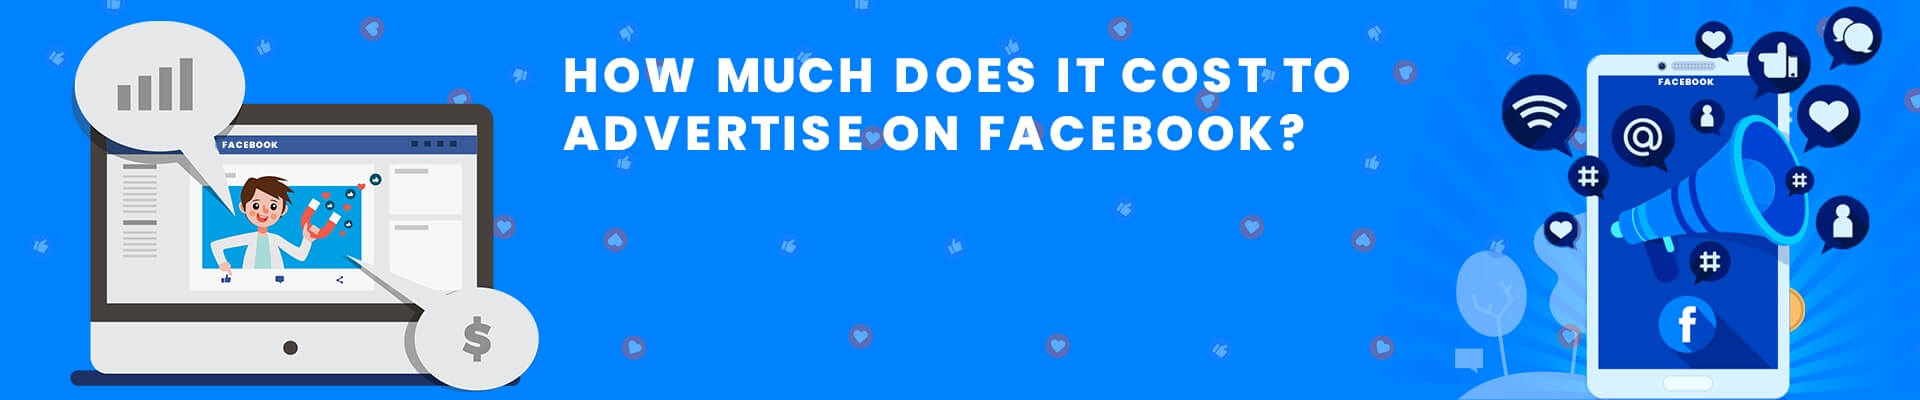 How Much Does It Cost To Advertise on Facebook? [2021]